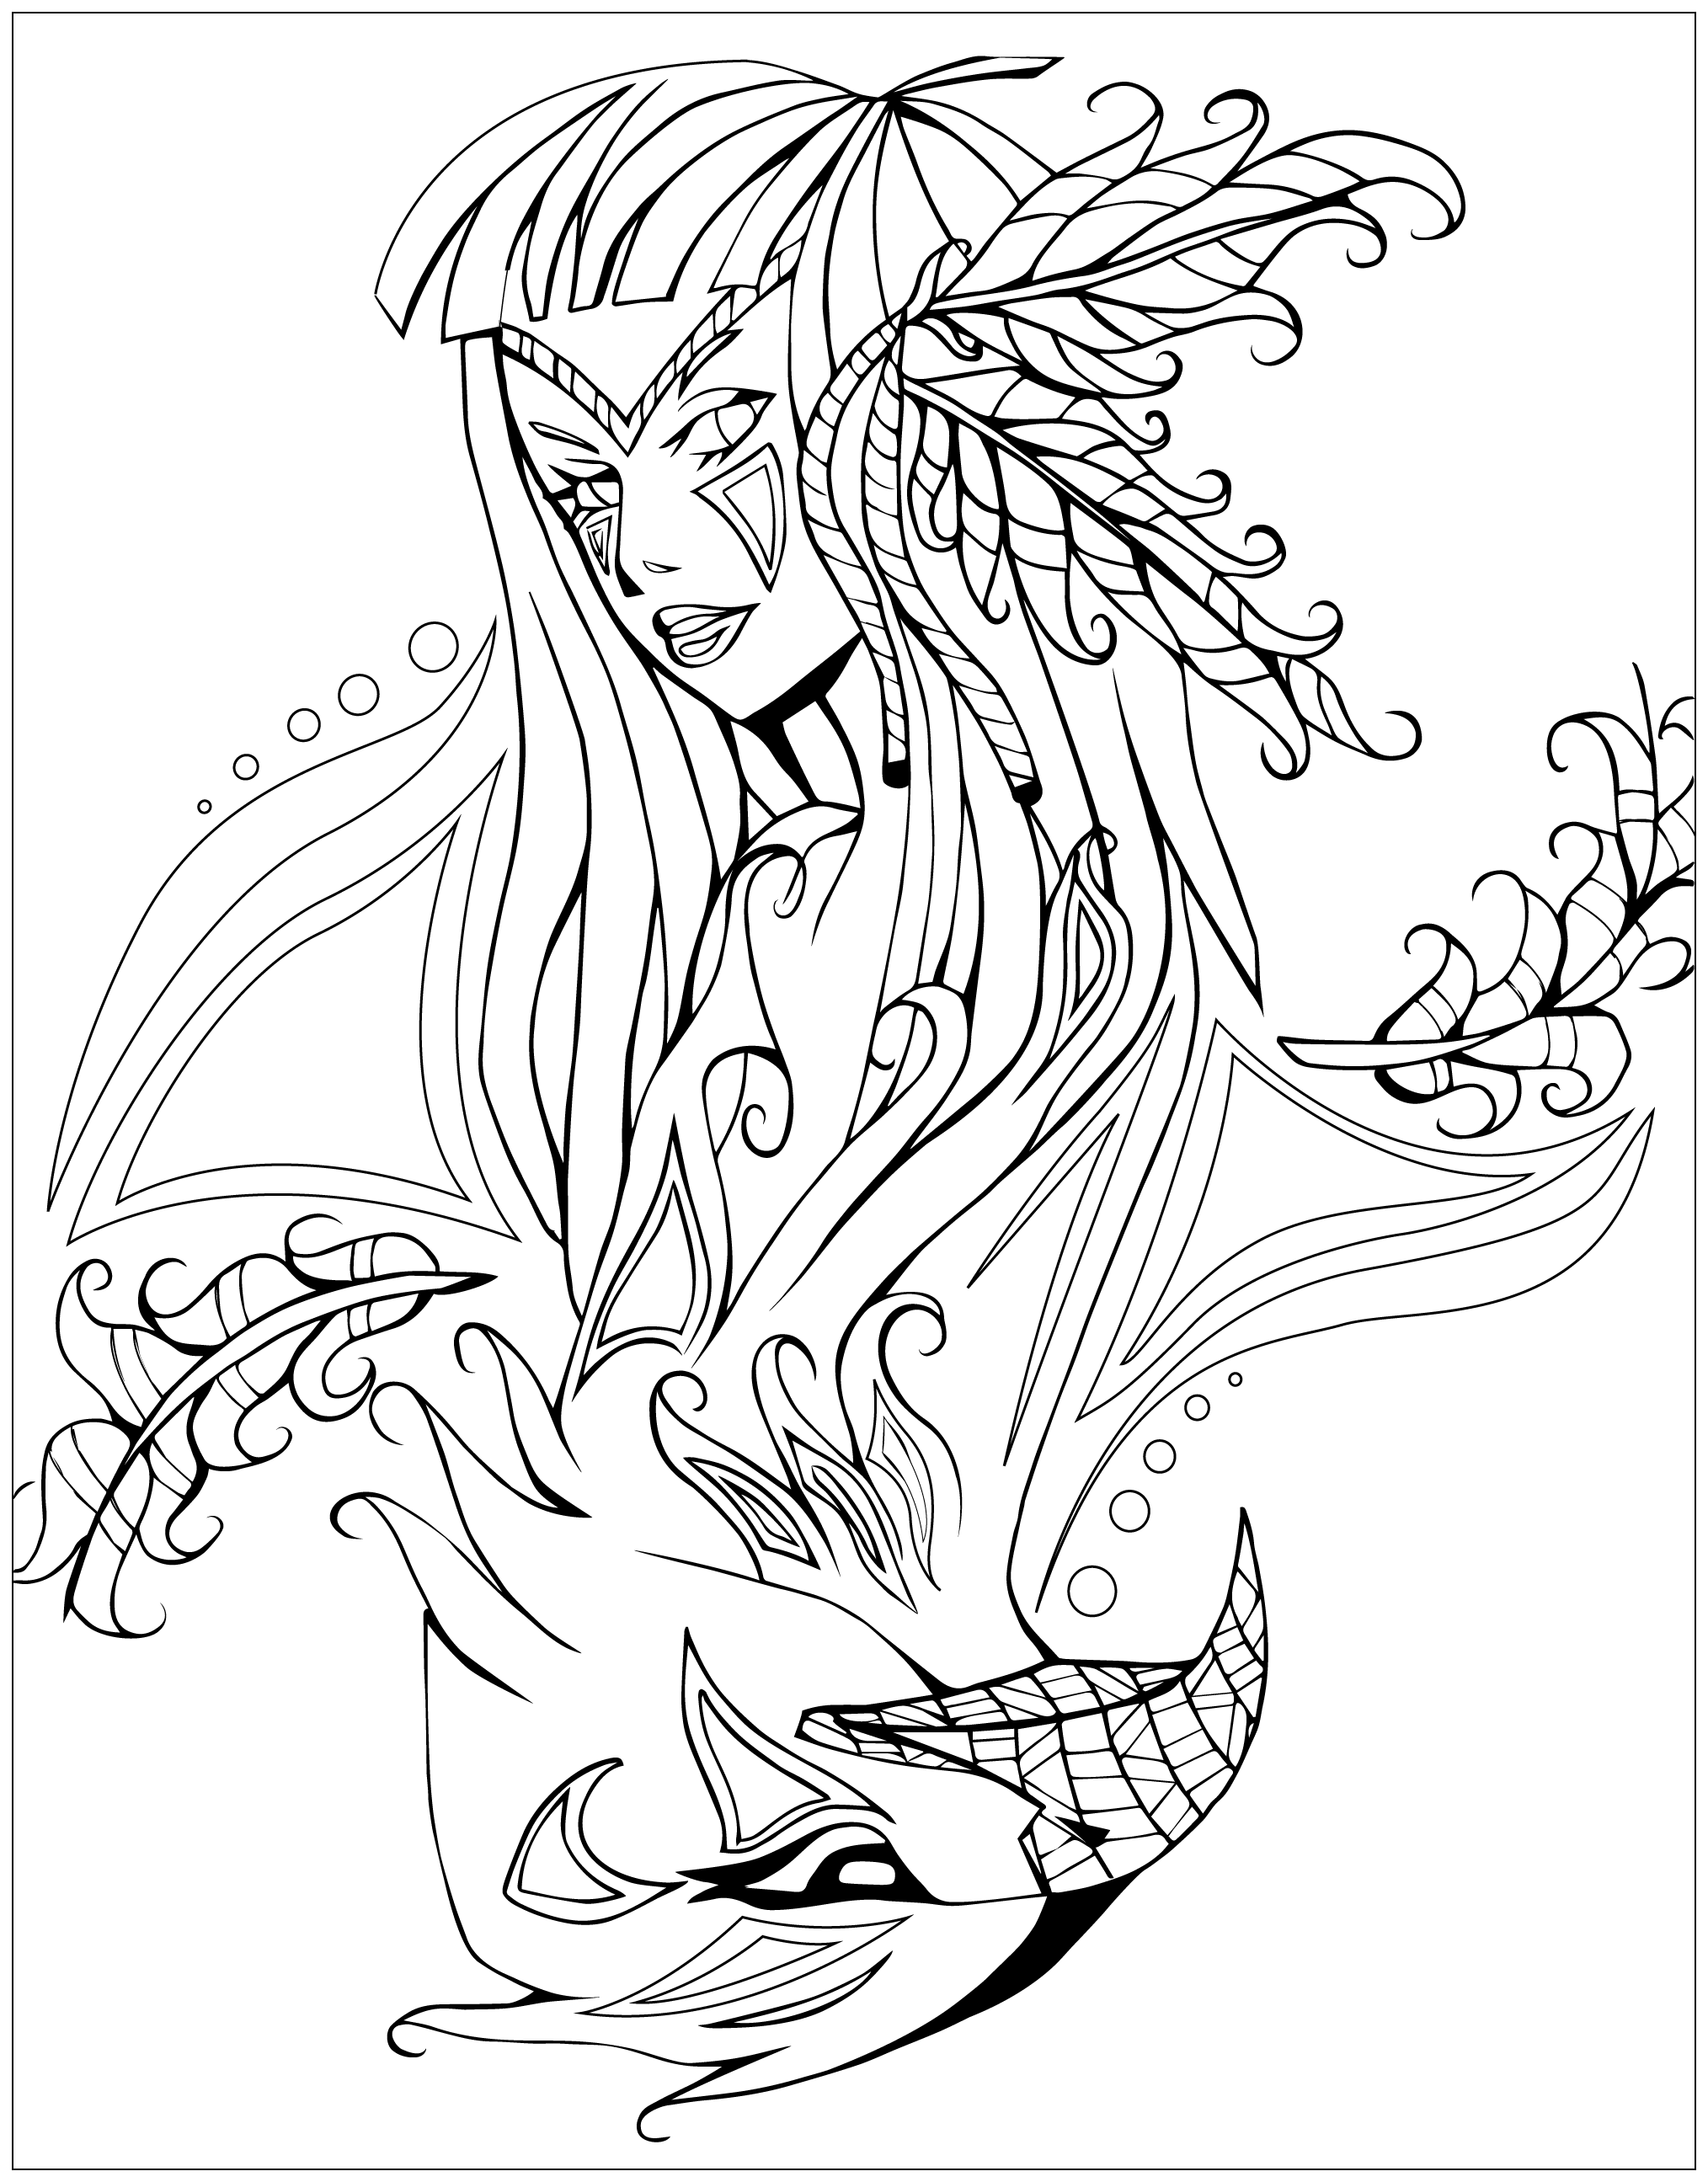 native american colouring sheets native american coloring pages to download and print for free native american colouring sheets